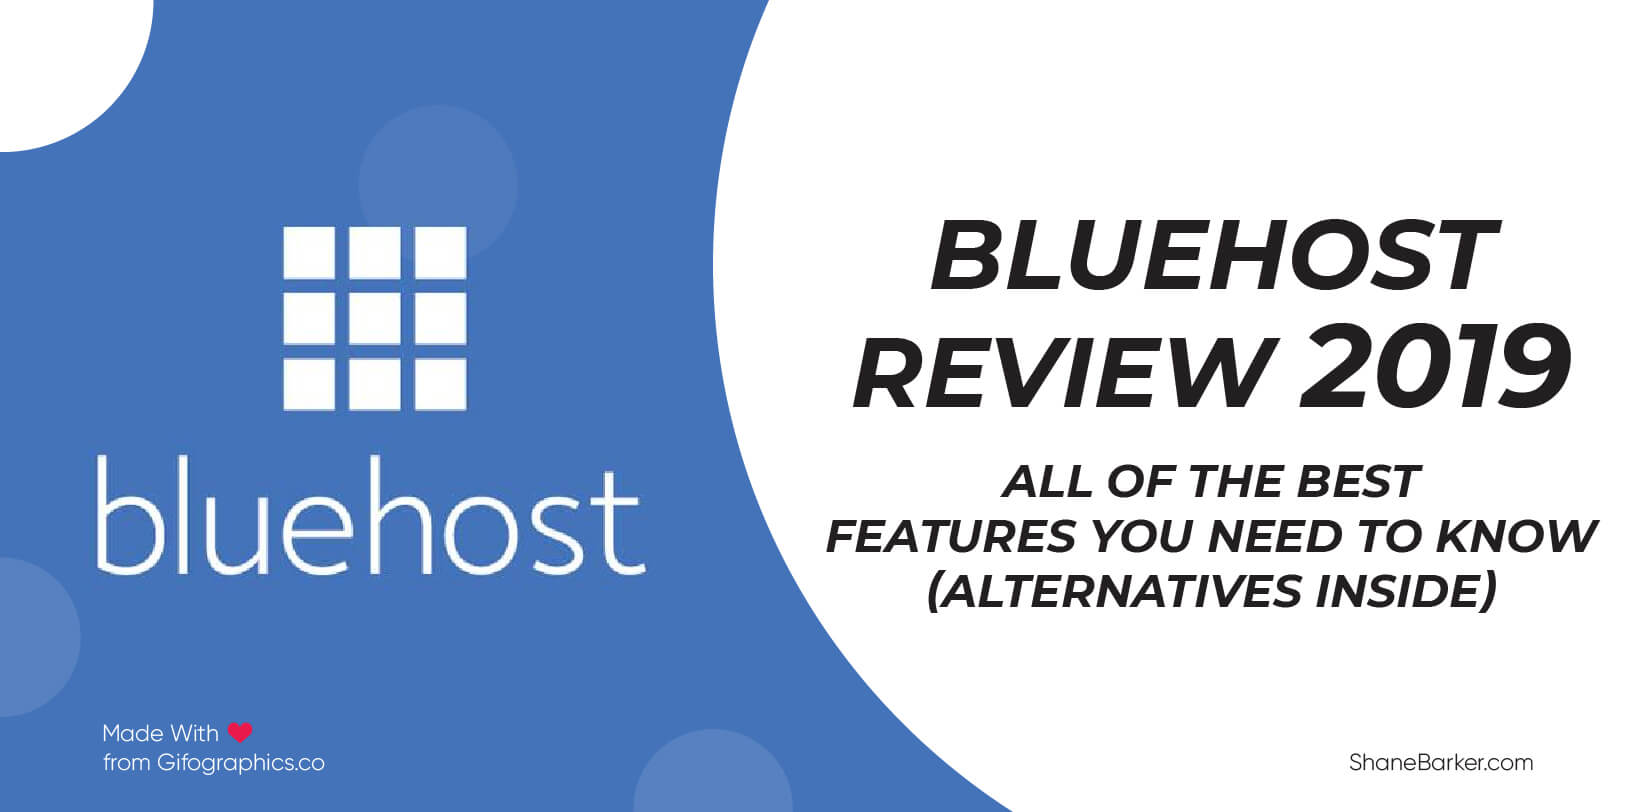 Bluehost Review 2019 All of the Best Features You Need to Know (Alternatives Inside)